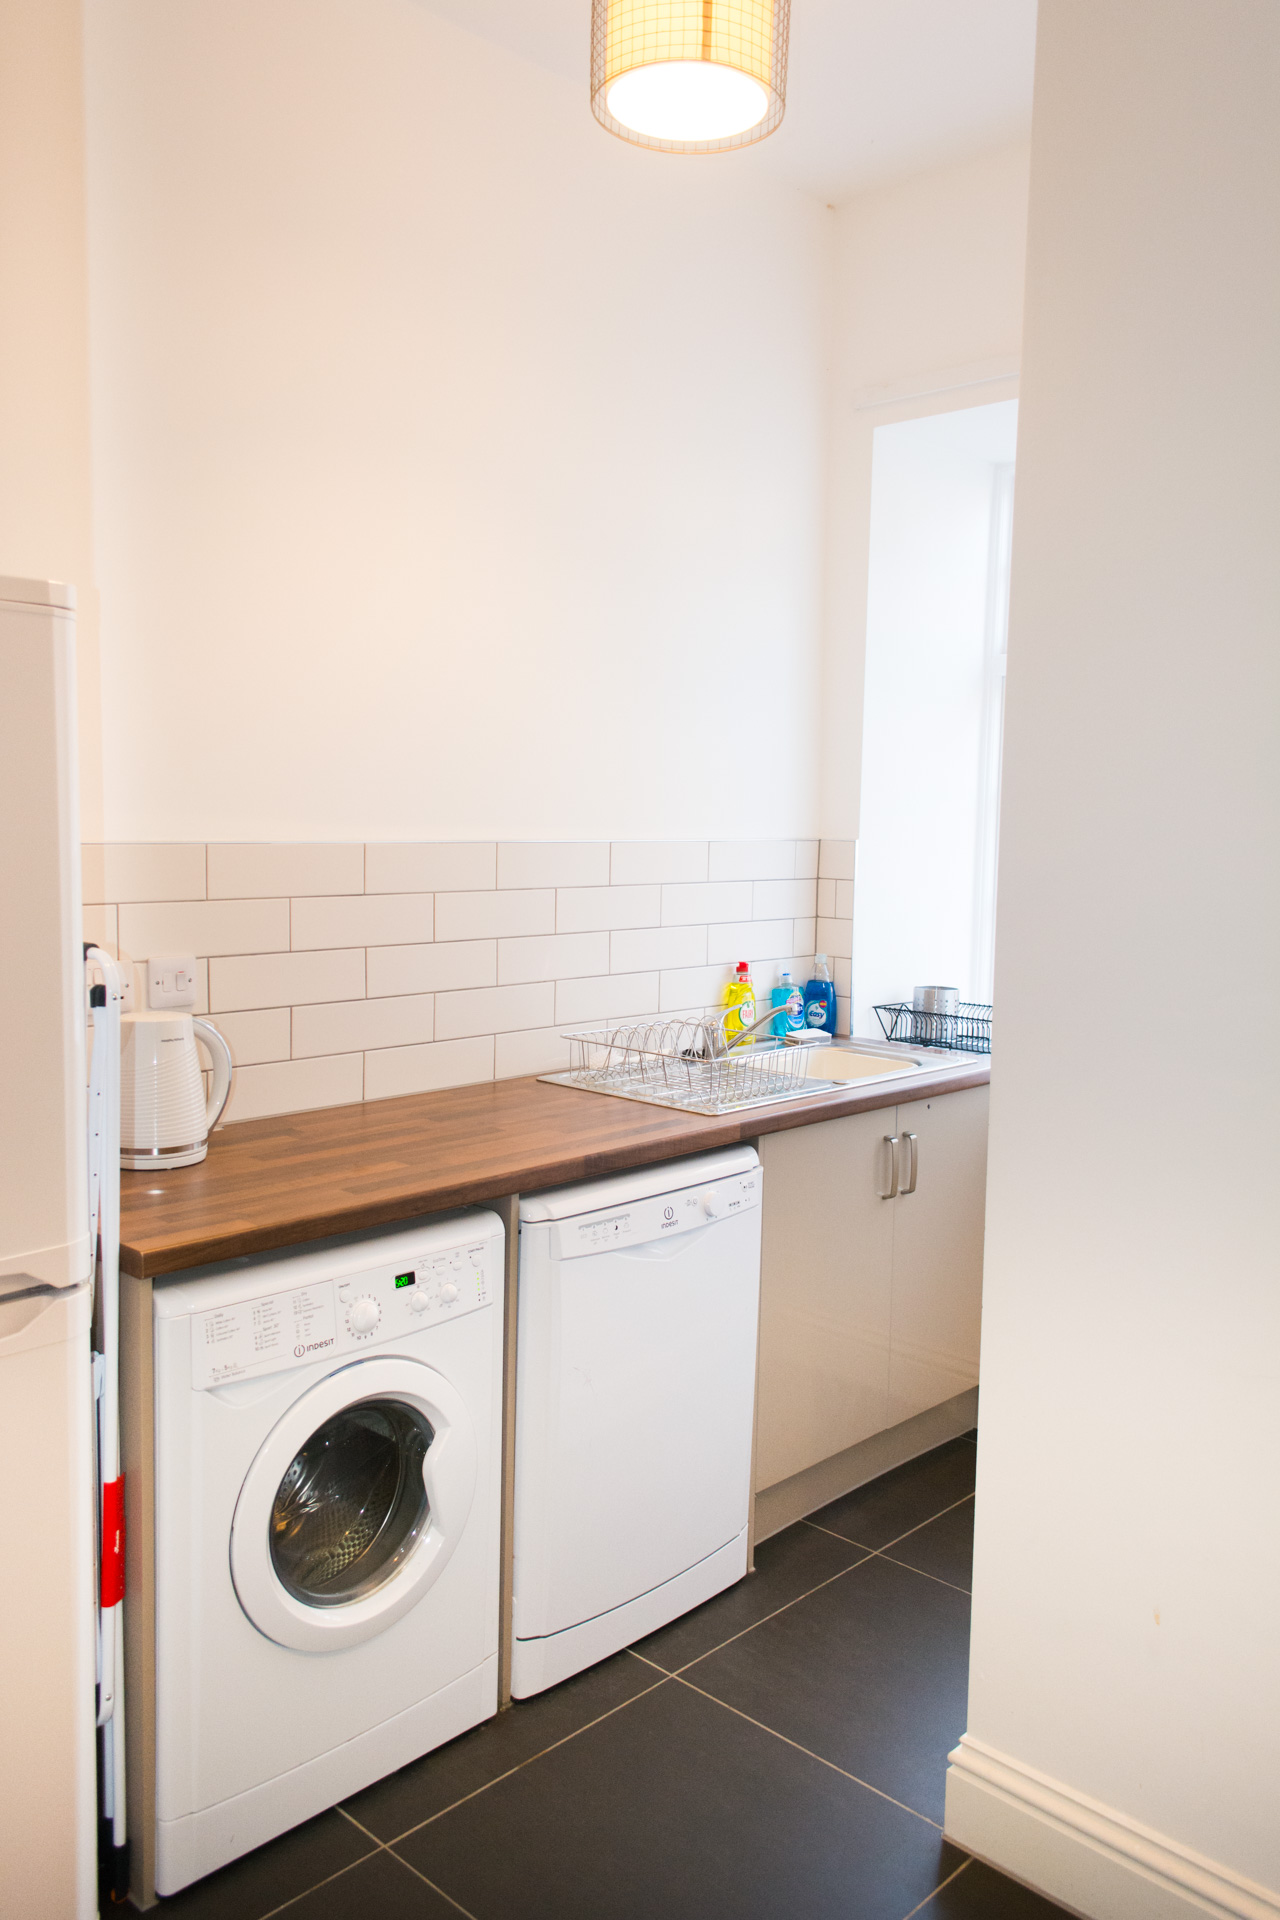 Wash room filled with amenities and white goods.